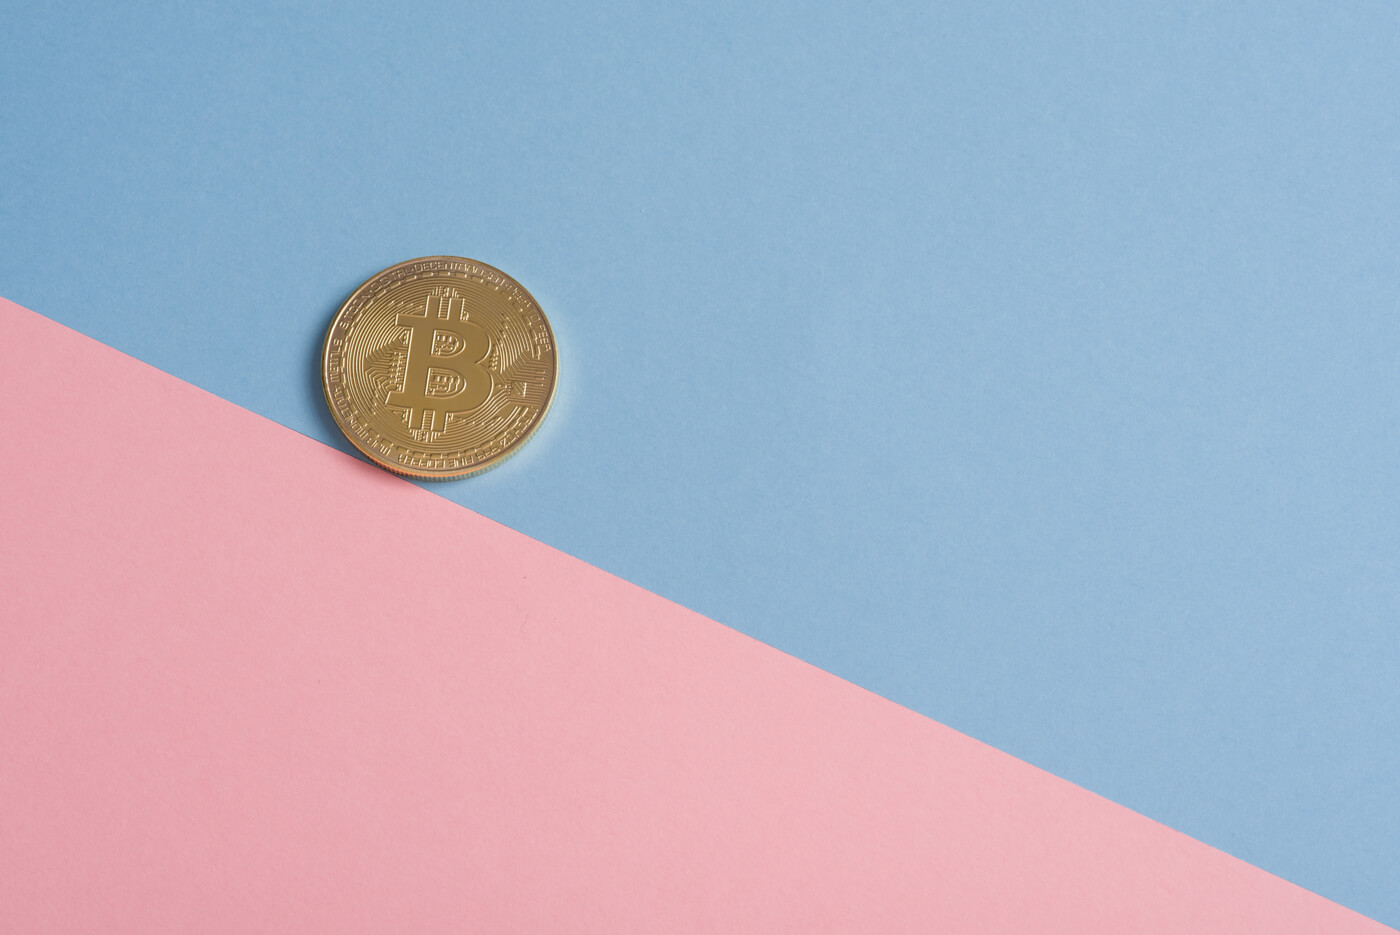 a coin on blue and pink background